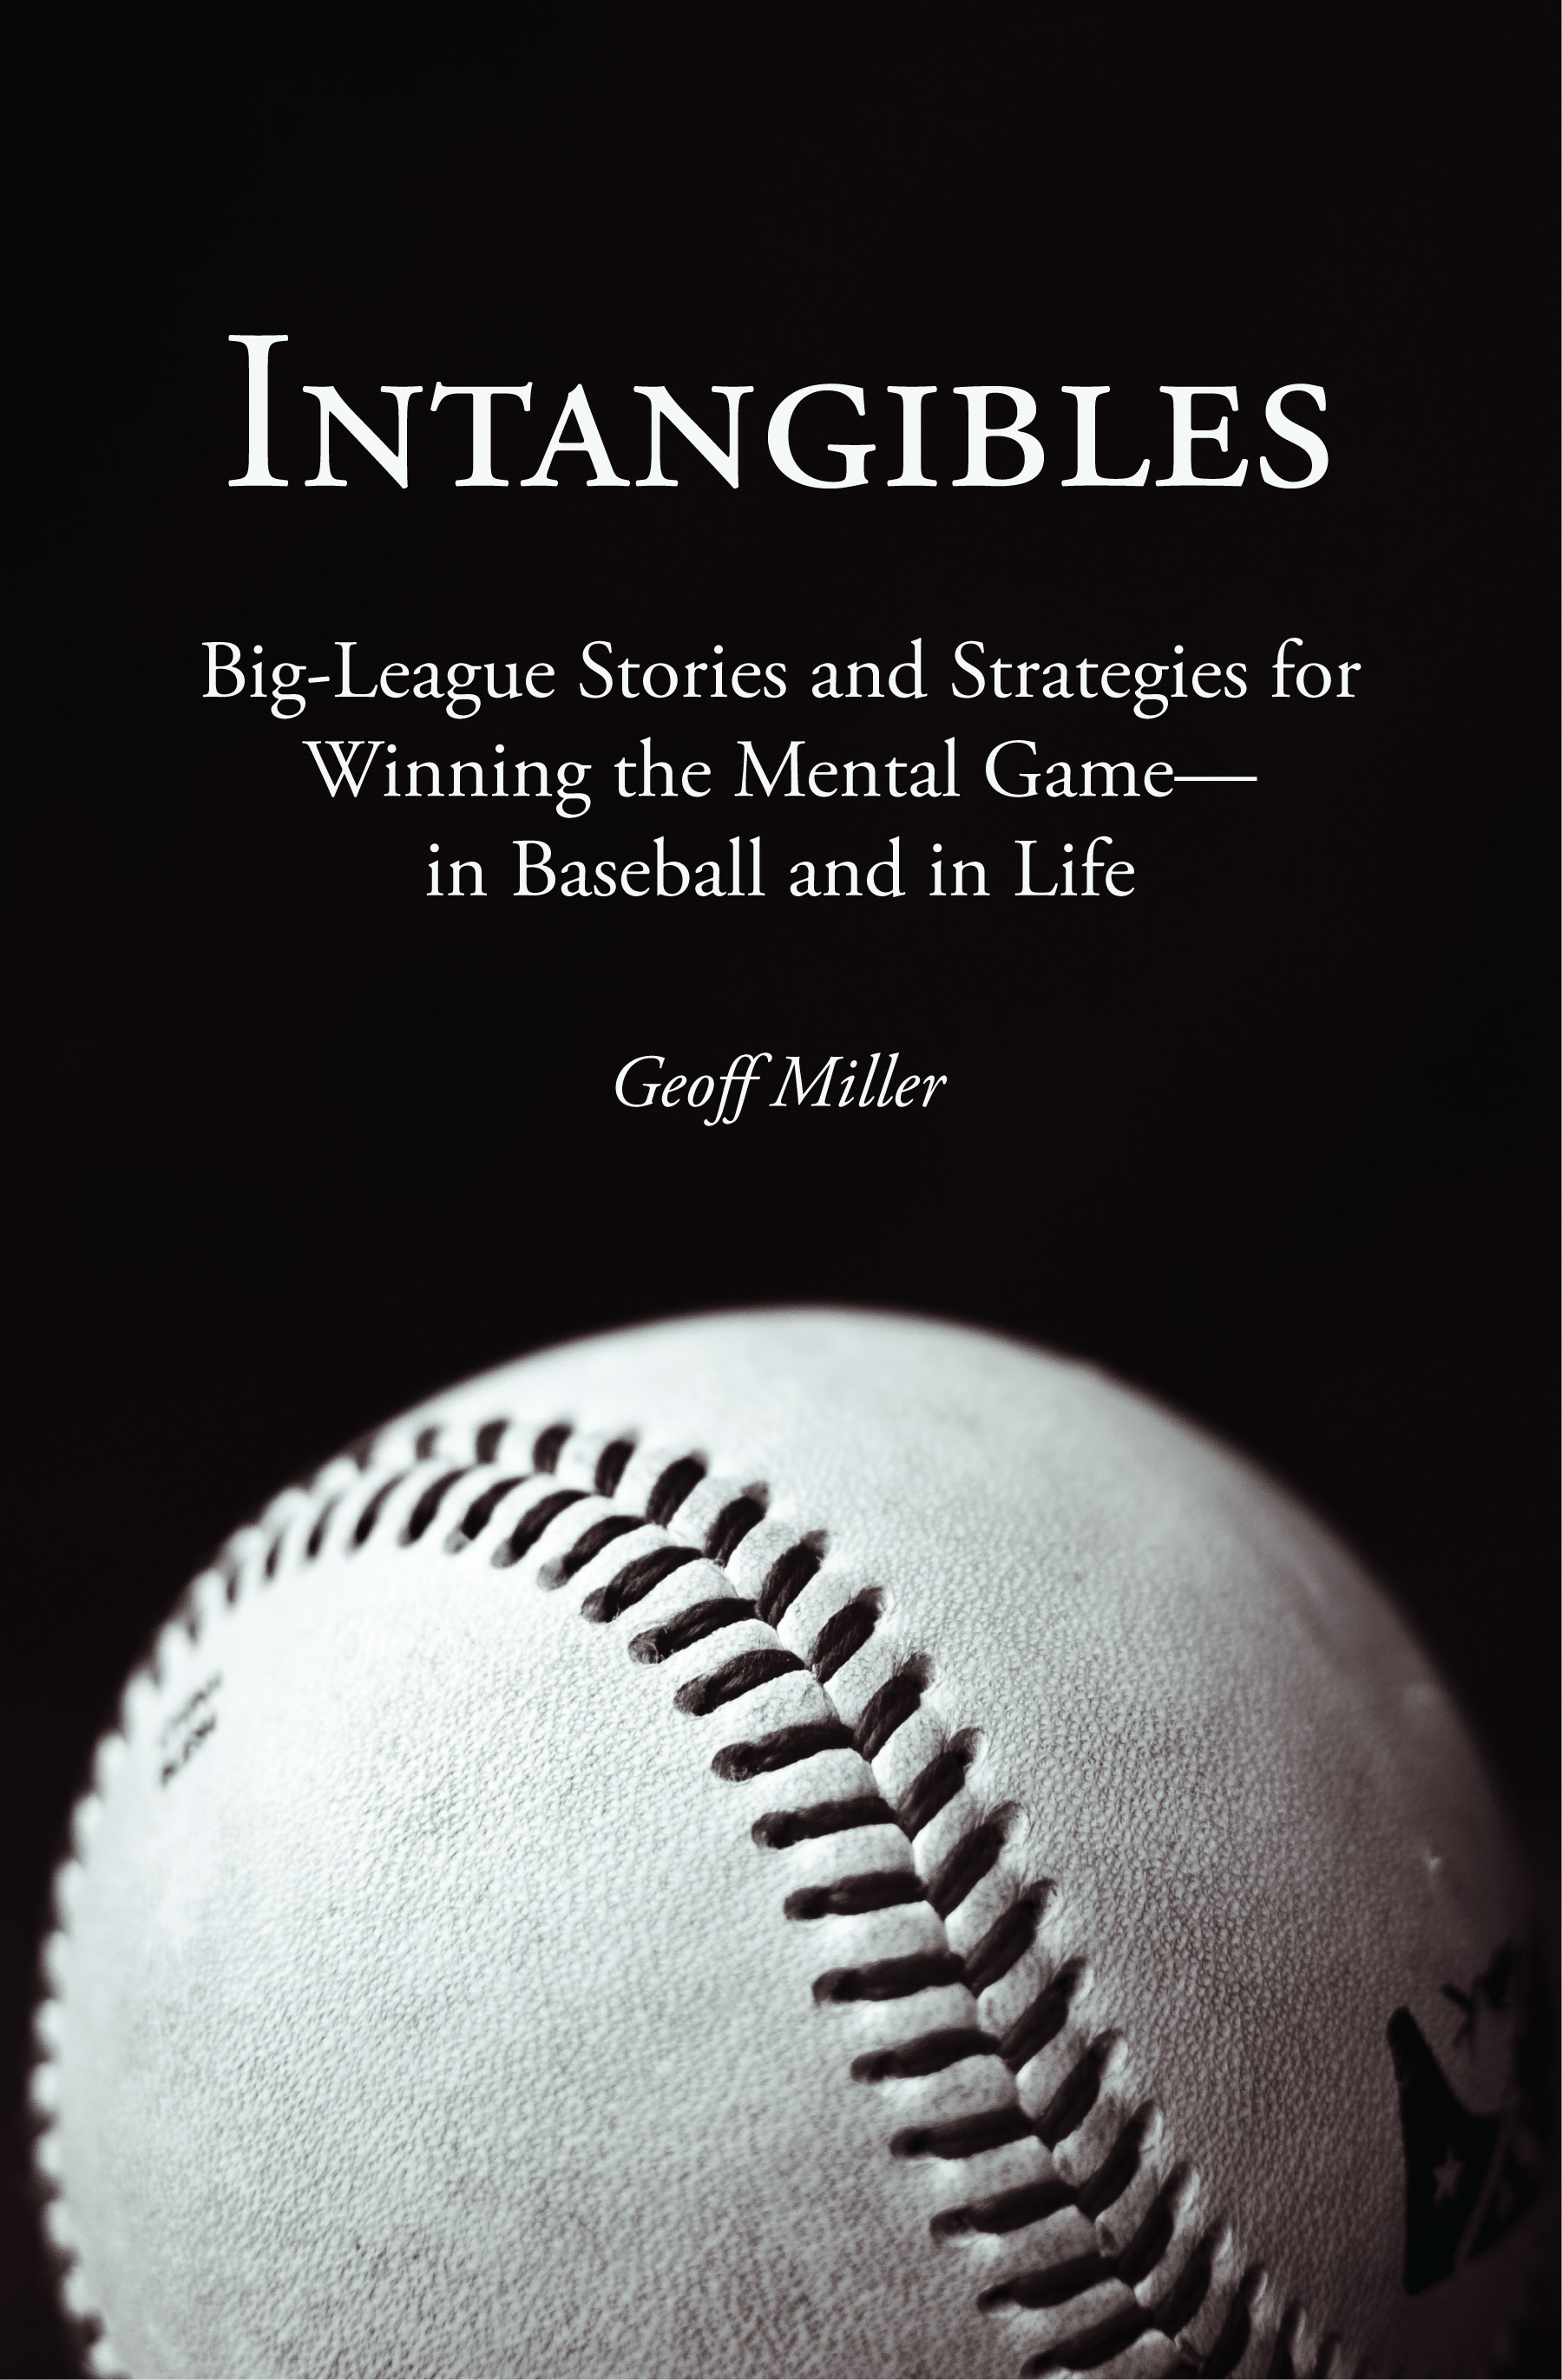 Intangibles: Big-League Stories and Strategies for Winning the Mental Game?in Baseball and in Life By: Geoff Miller